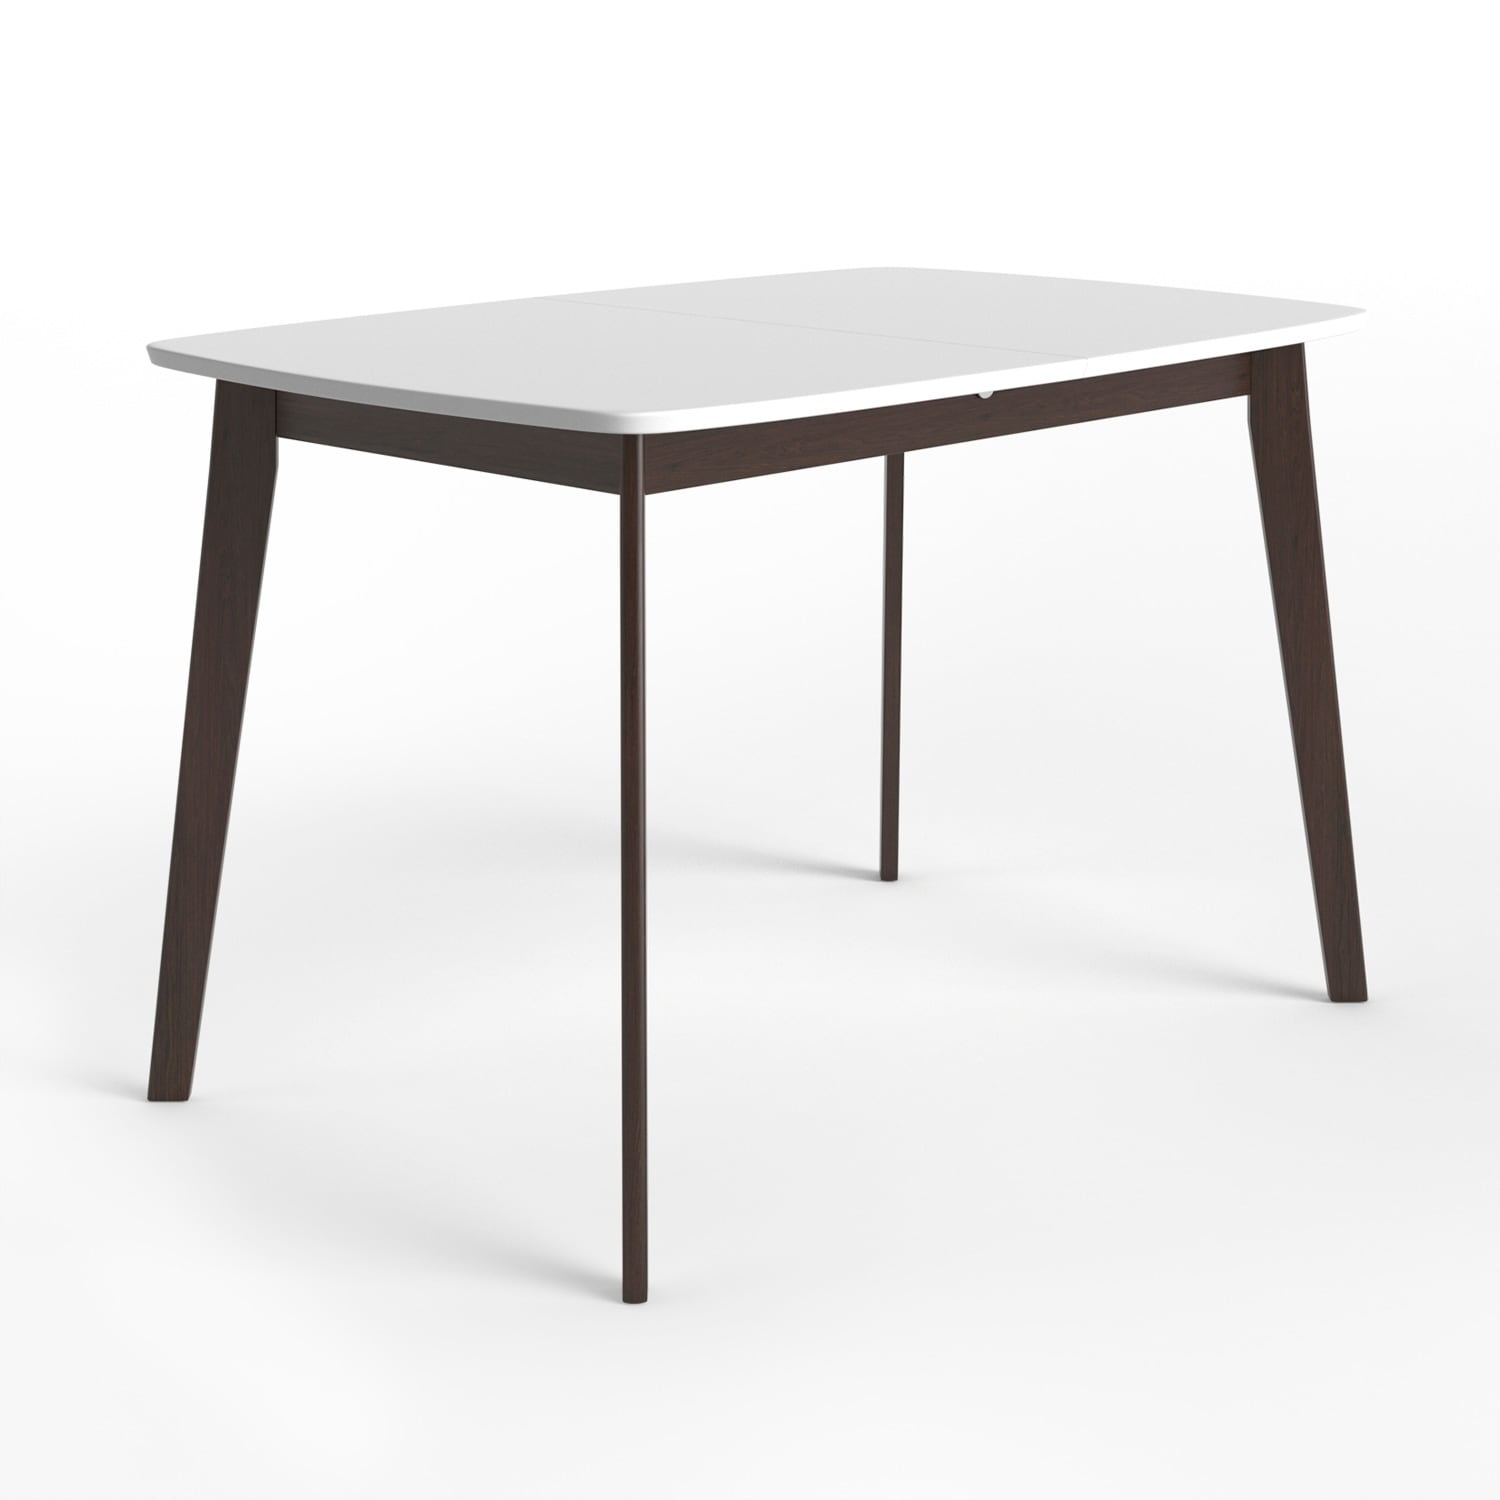 Aeon Furniture Aldo Modern Walnut And White Extension Dining Table